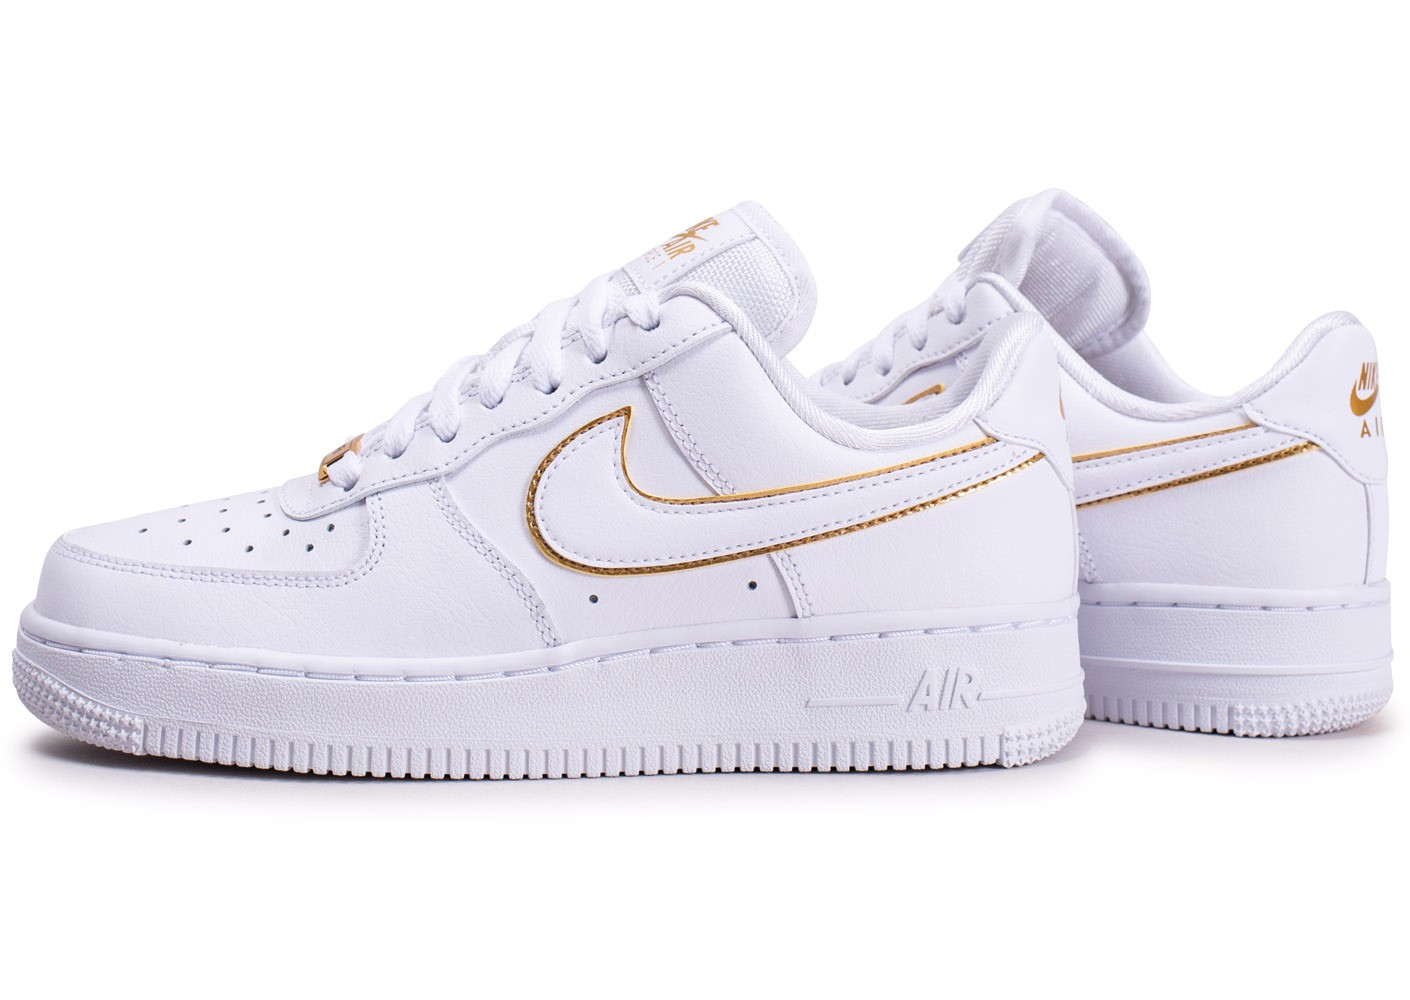 Nike Air Force 1'07 Essential blanche et or femme ...